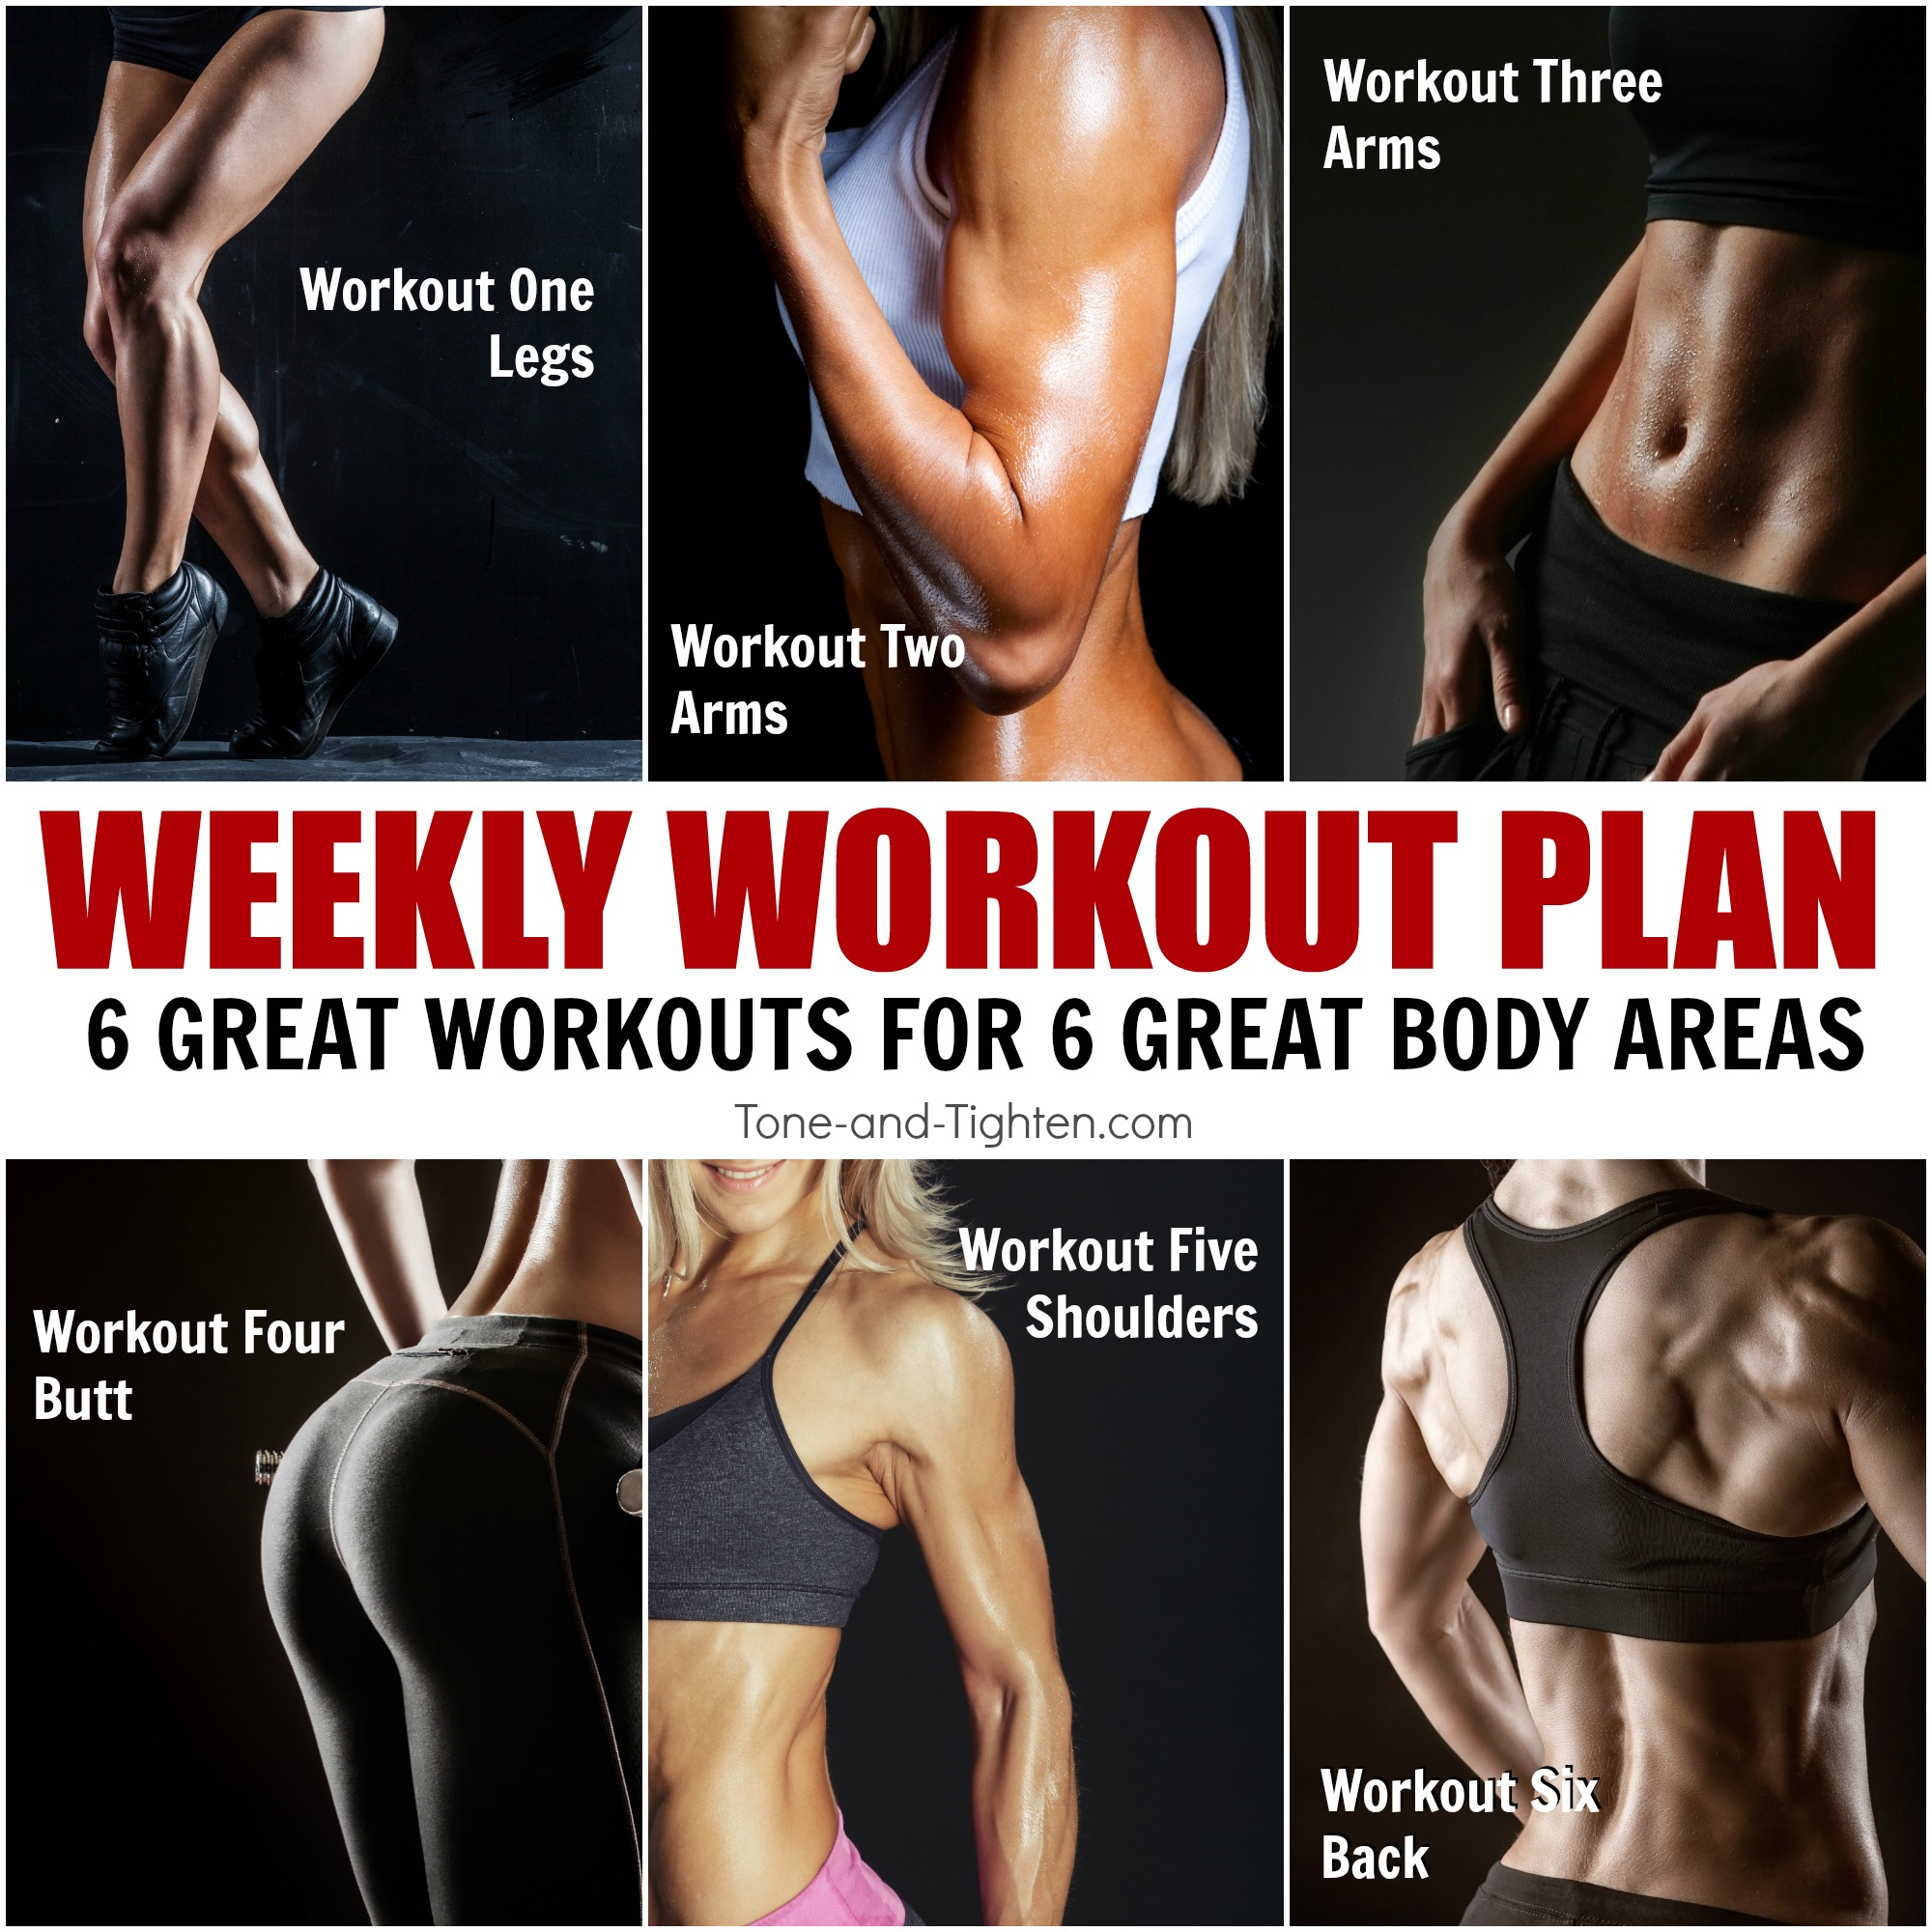 Free Weights Total Body Workout: Total Body One-Week Workout Plan